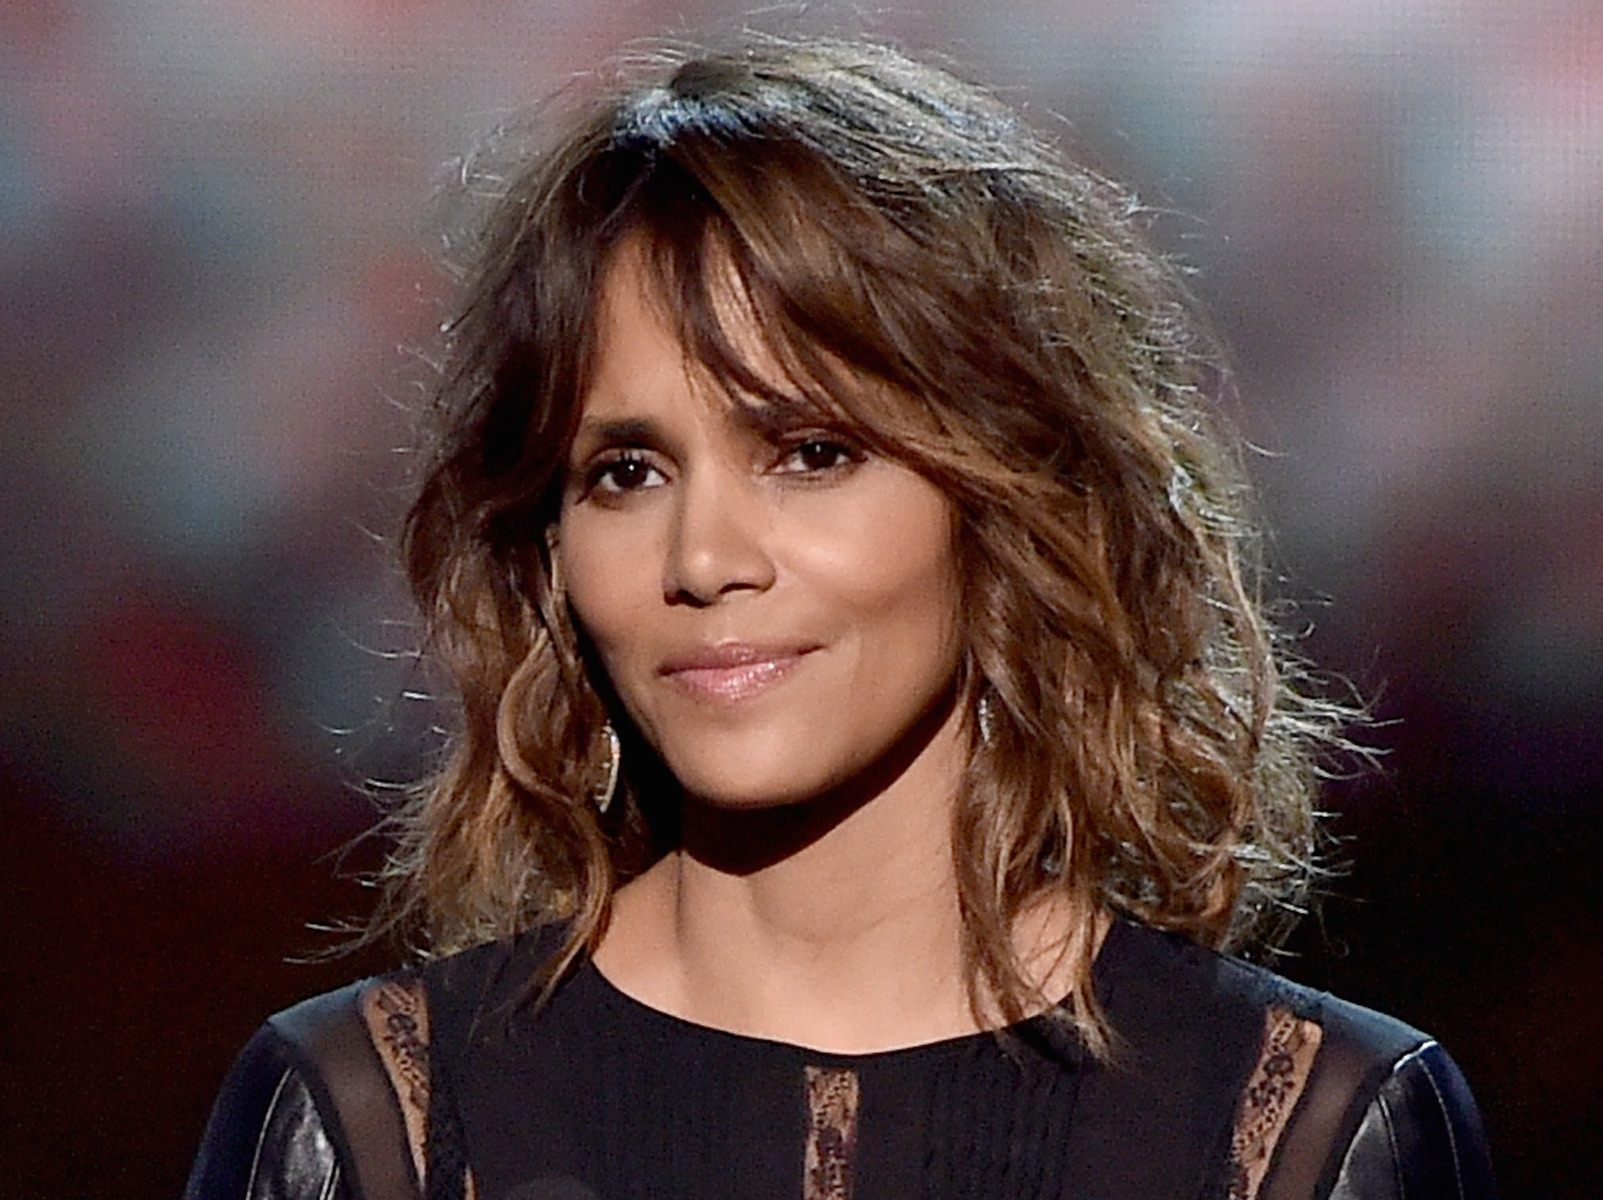 Halle Berry Brings Heat to CA Climate Change Debate ... Halle Berry